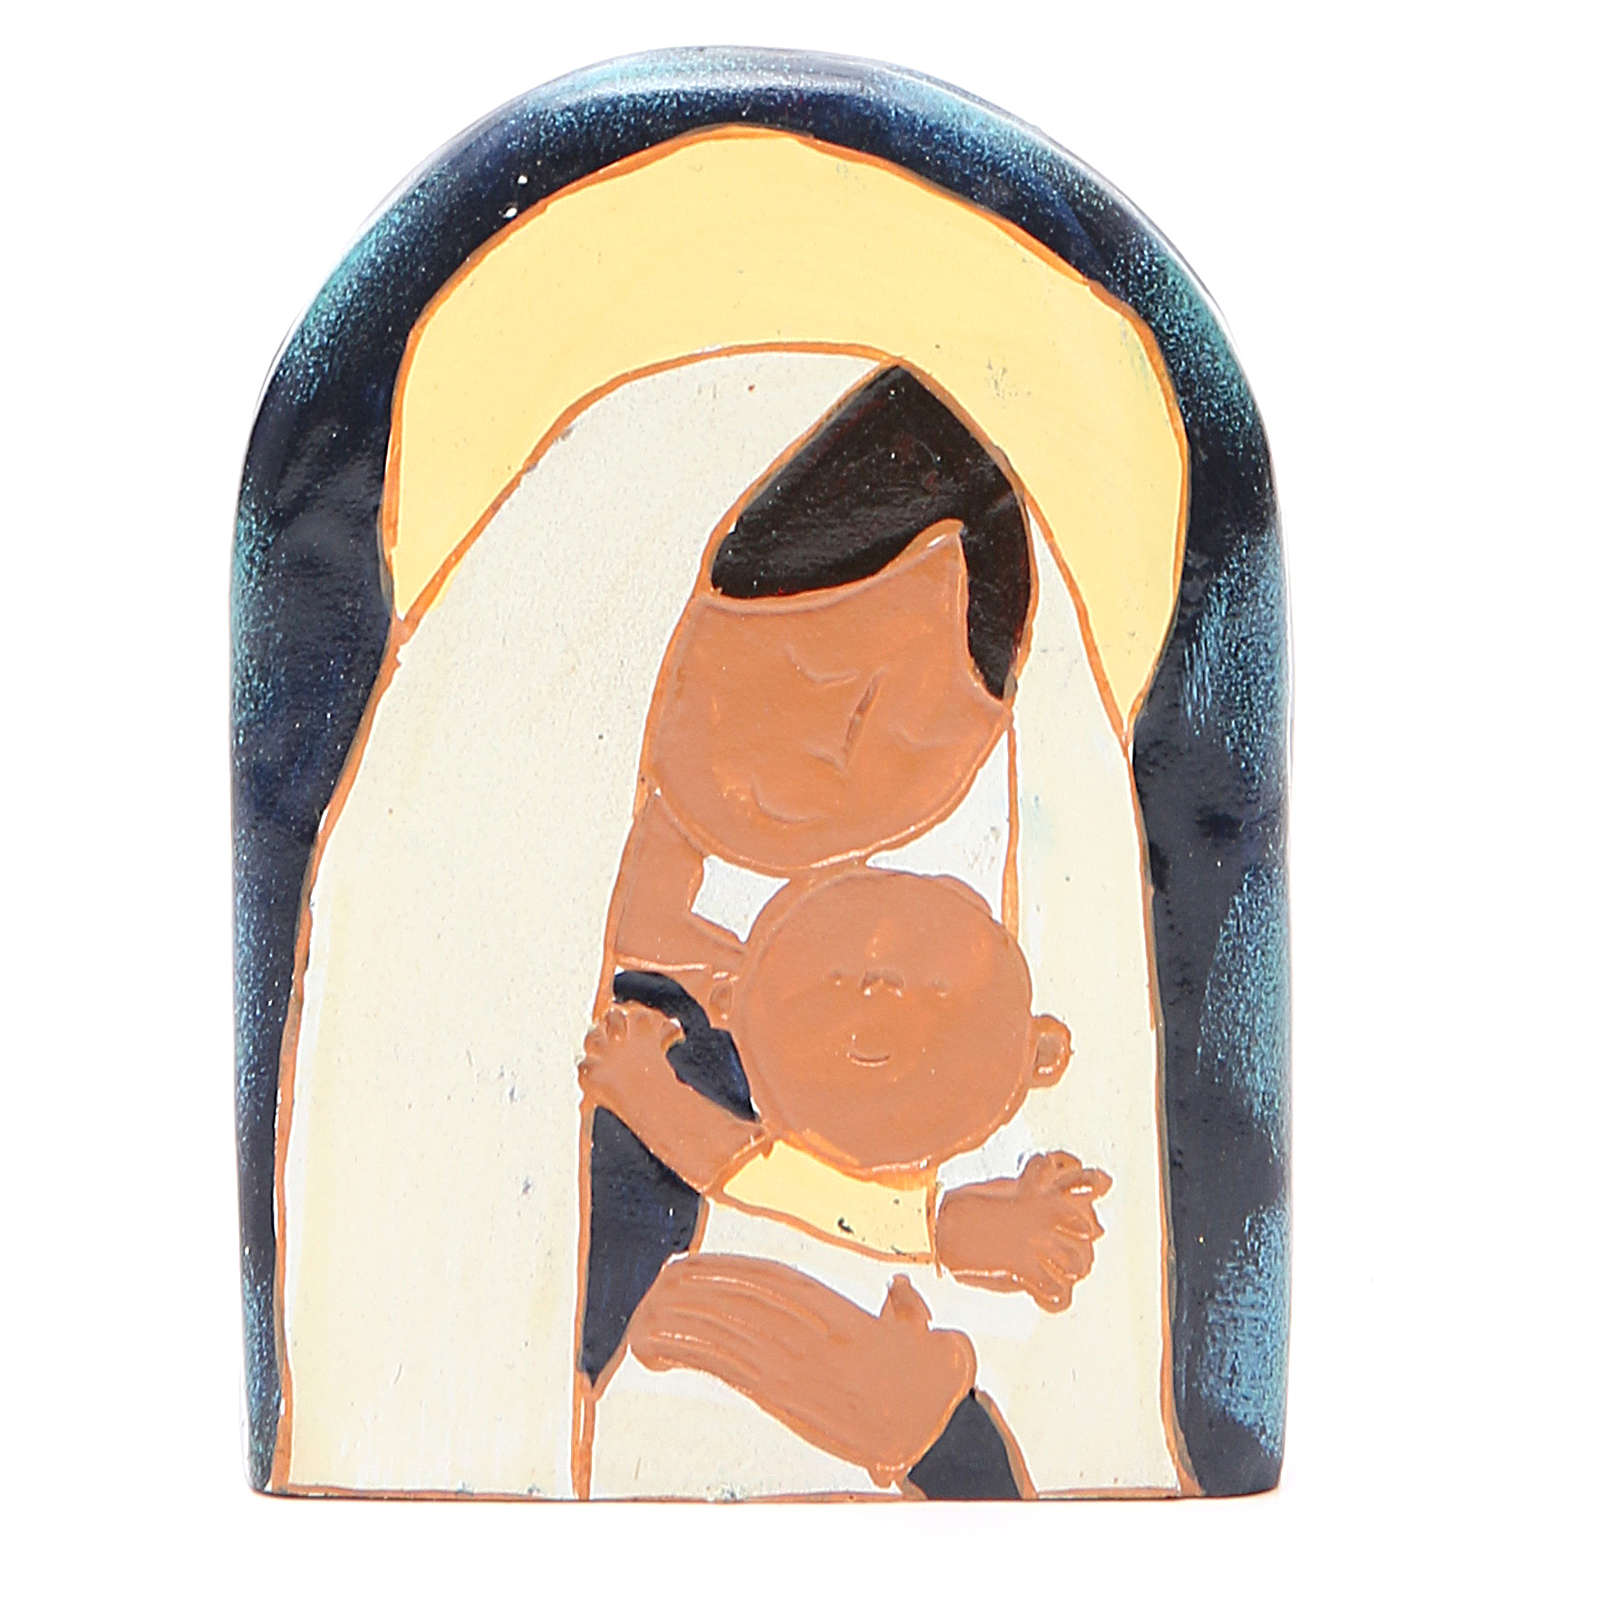 STOCK Bajorrelieve Virgen con Niño resina coloreada 4